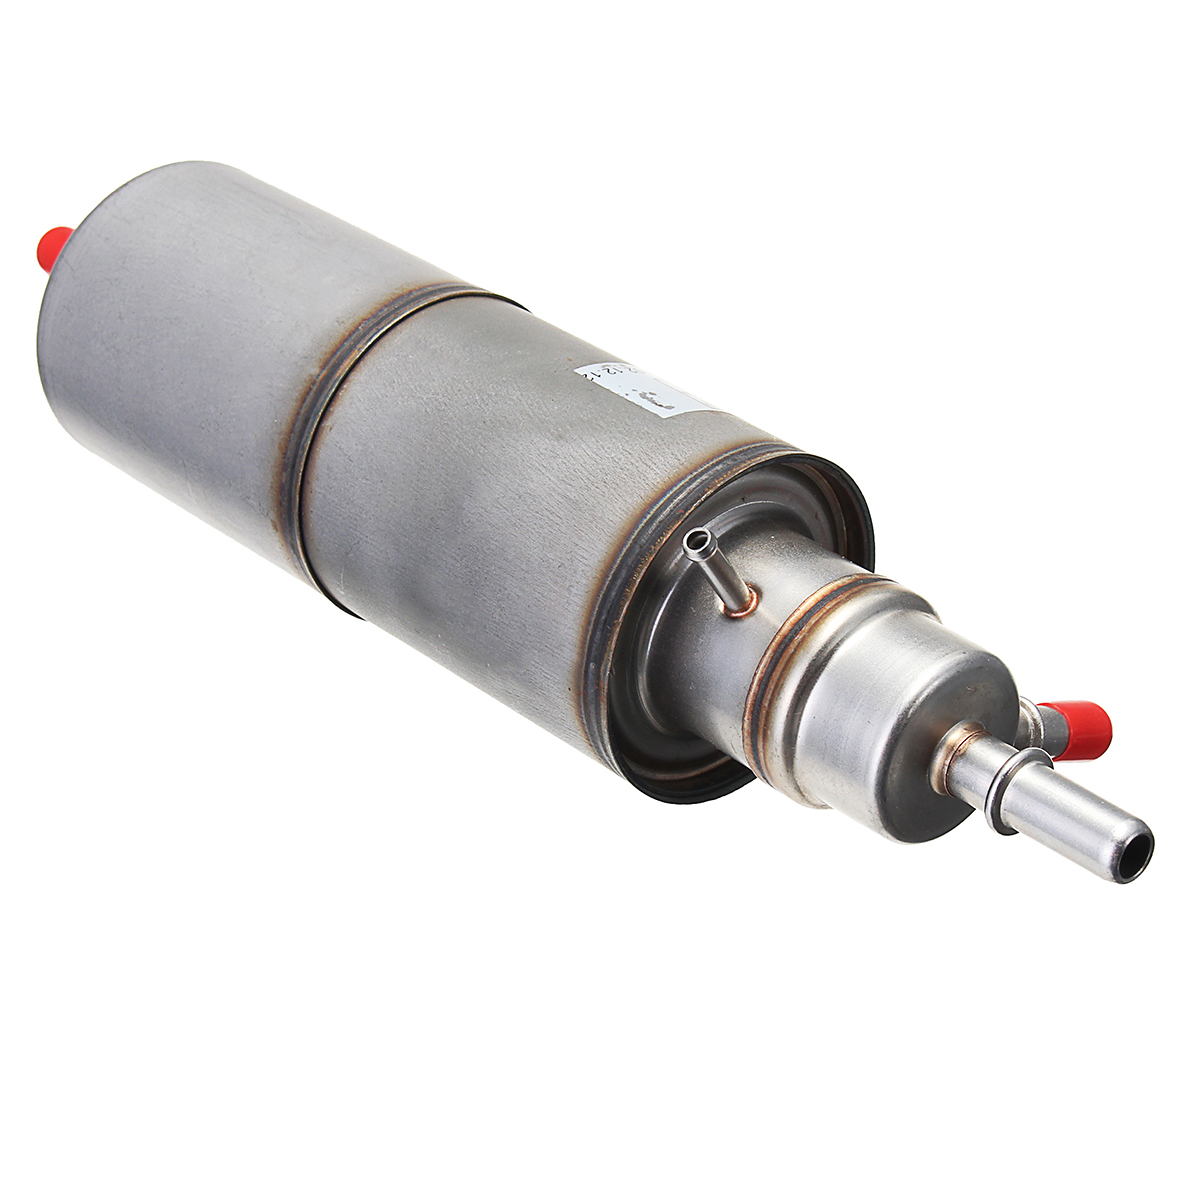 New Oil Fuel Filter For Mercedes Model Ml55 Amg Ml320 Ml430 01 Location 1 X More Detailed Photos